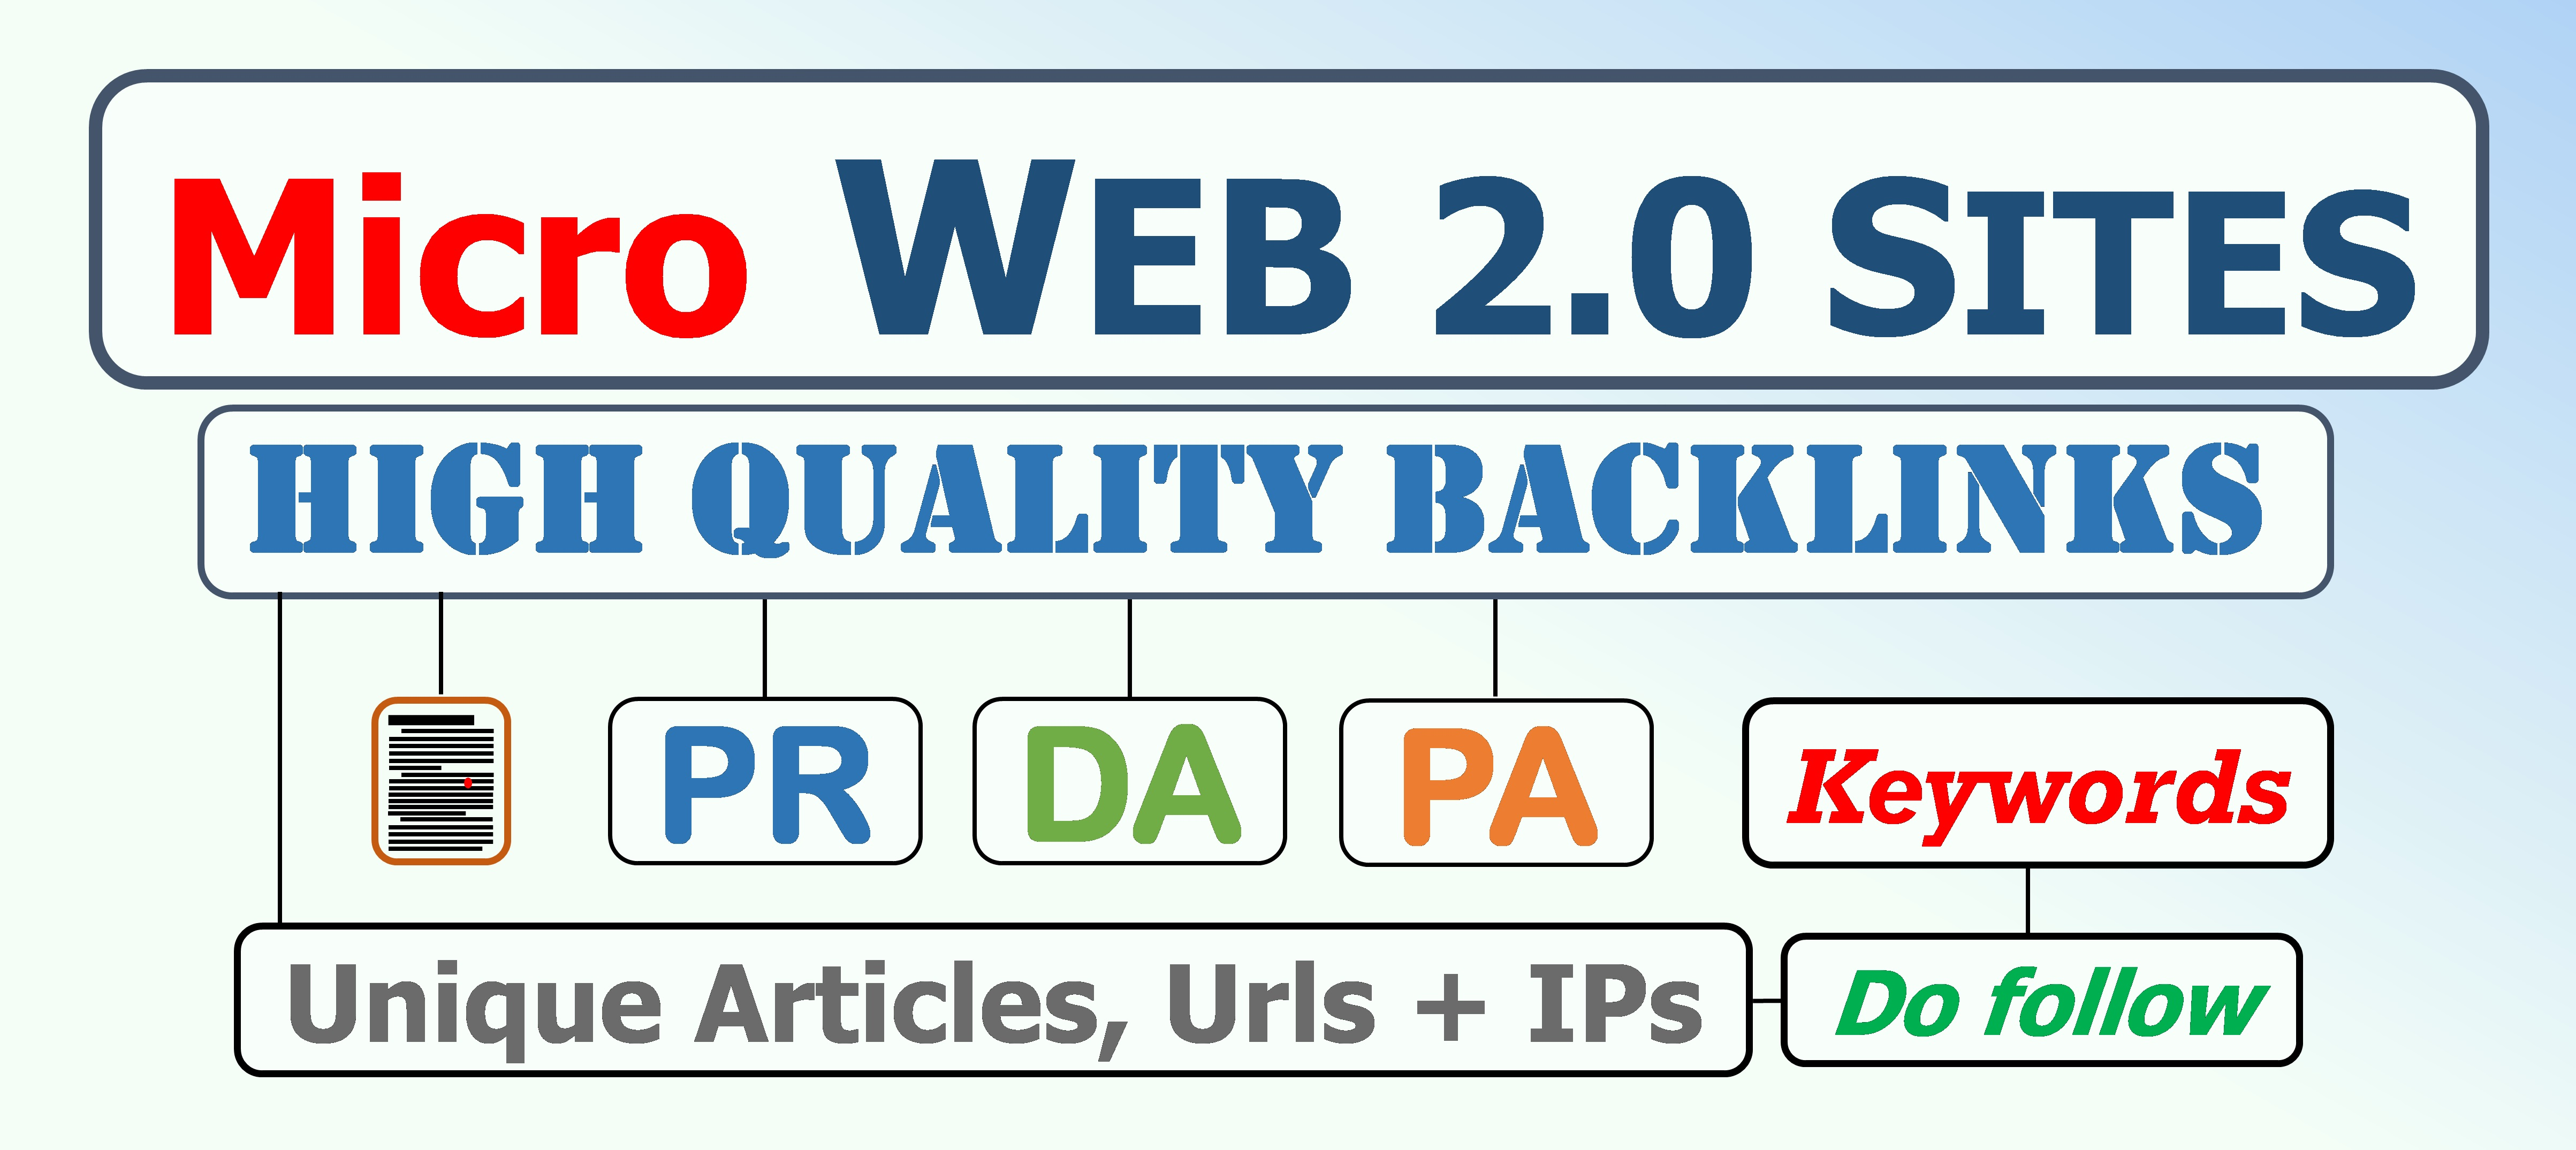 Micro Panda Safe 4.2 Backlinks with PR,  DA,  PA,  do follow Web 2.0 Blogs for Organic traffic